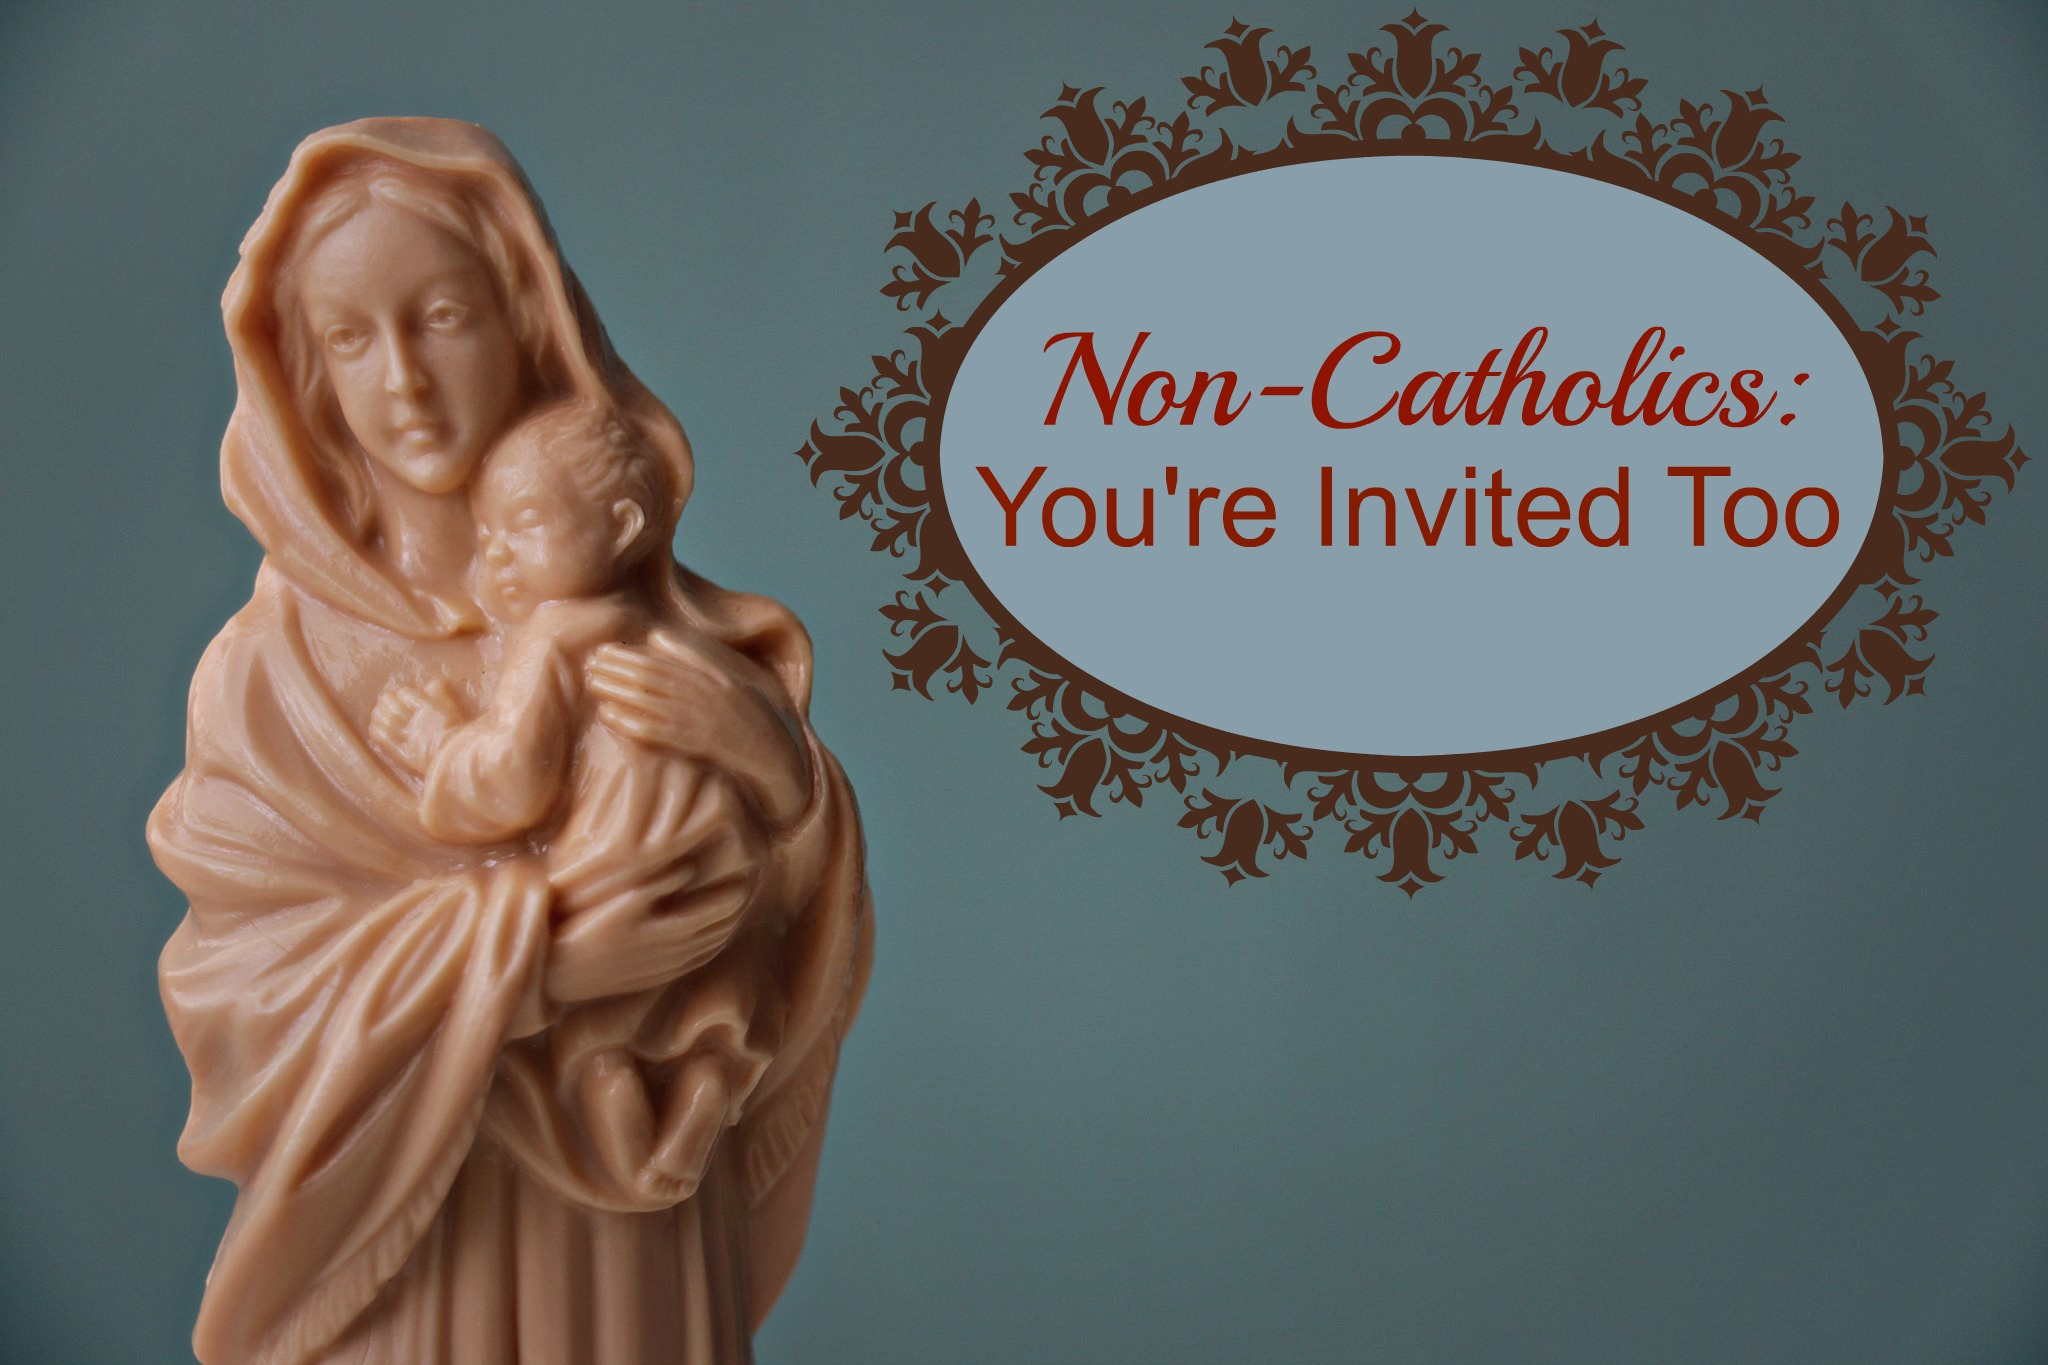 Dear Non-Catholic, You're Invited Too.